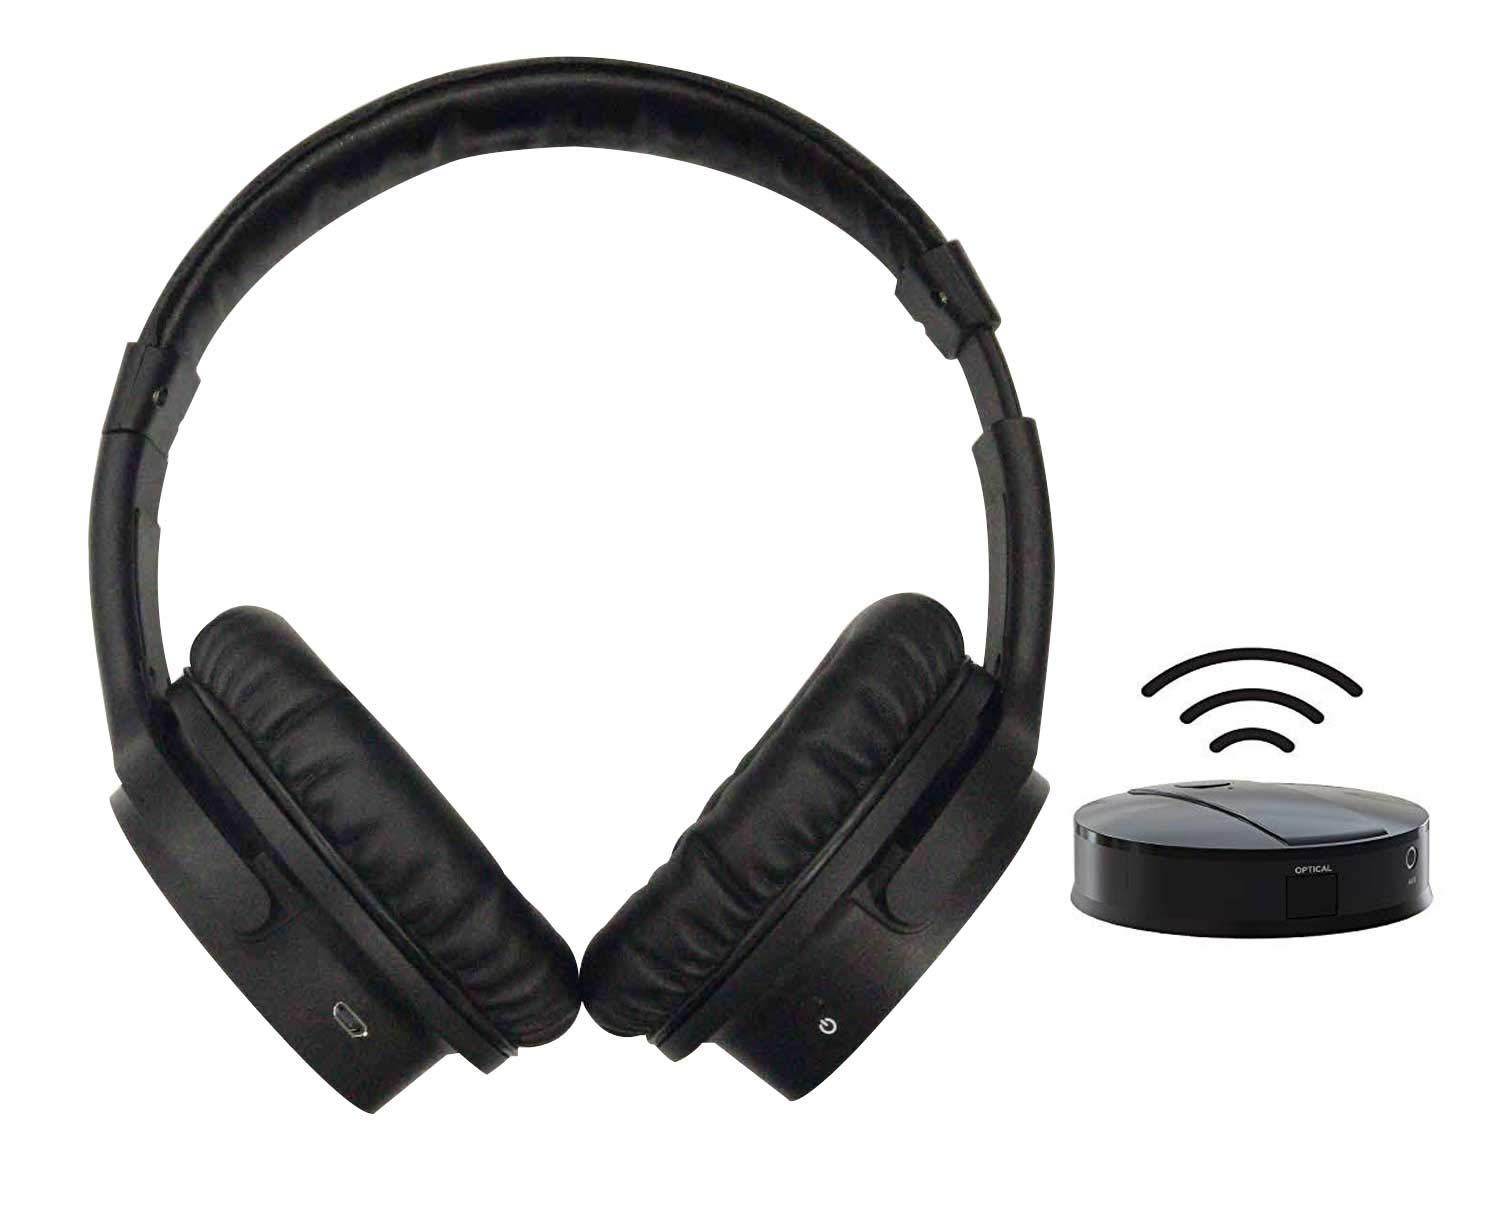 2.4GHz RF Wireless TV Headphones, Digital Stereo Over-Ear Headset, up to 100ft Distance Transmitter, 4 in1 Input, Support Optical, AUX, RCA & PC USB and 3.5mm Audio Port